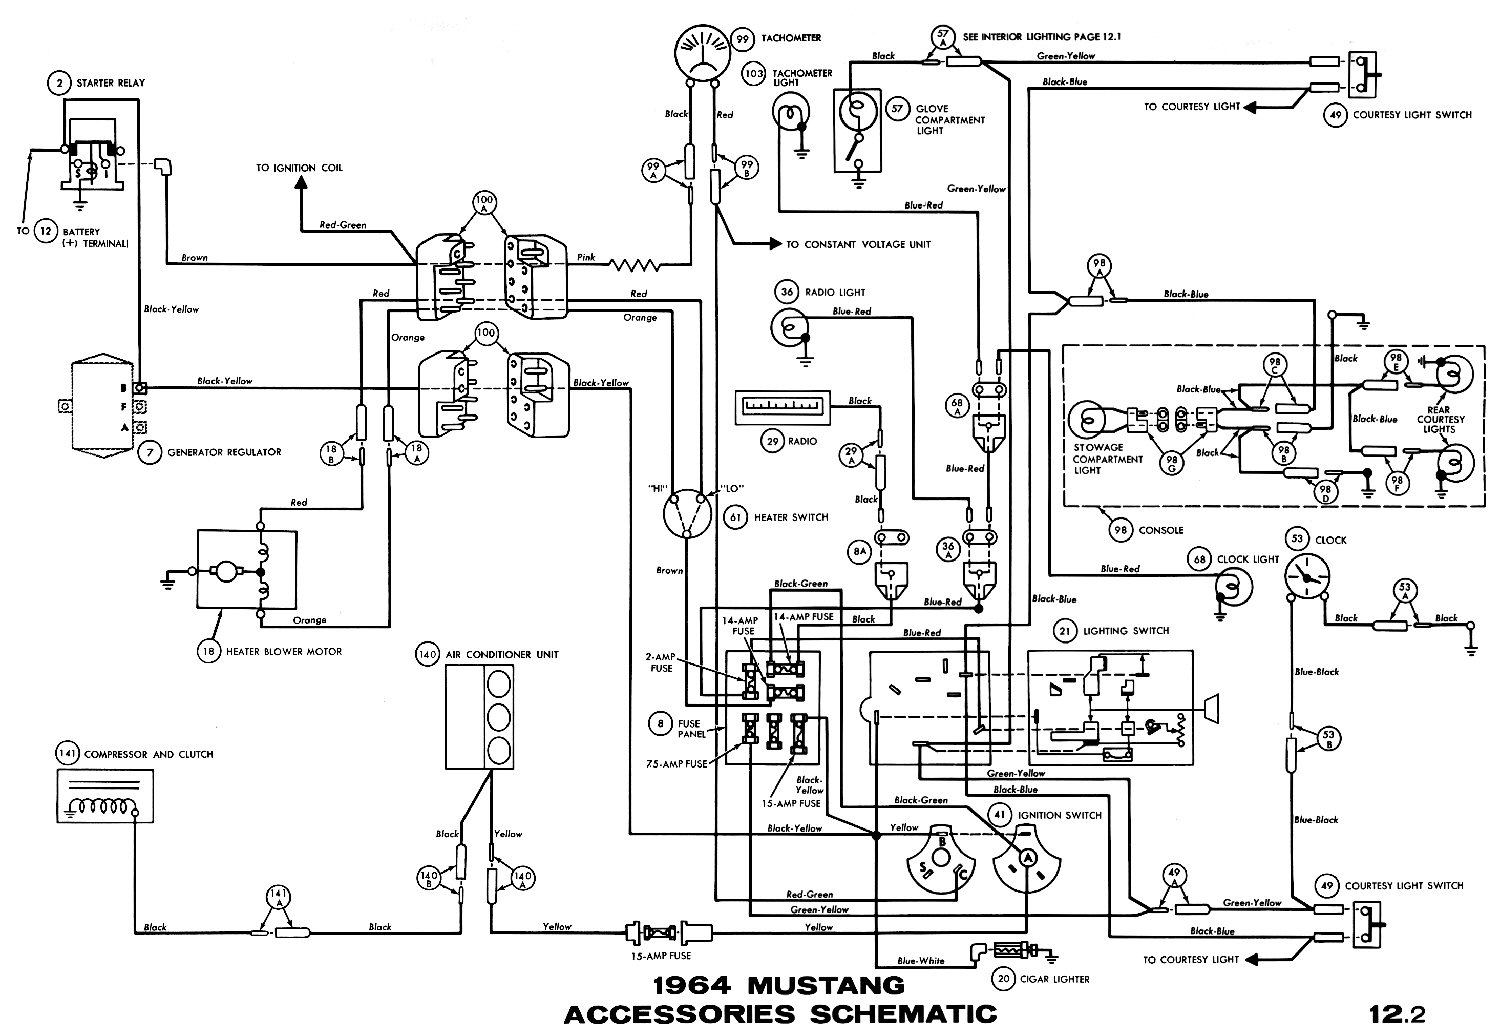 1964m 2015 mustang wiring diagram schematic mustang 2015 \u2022 free wiring 2015 Mustang Wiring Diagram Lighting at bakdesigns.co